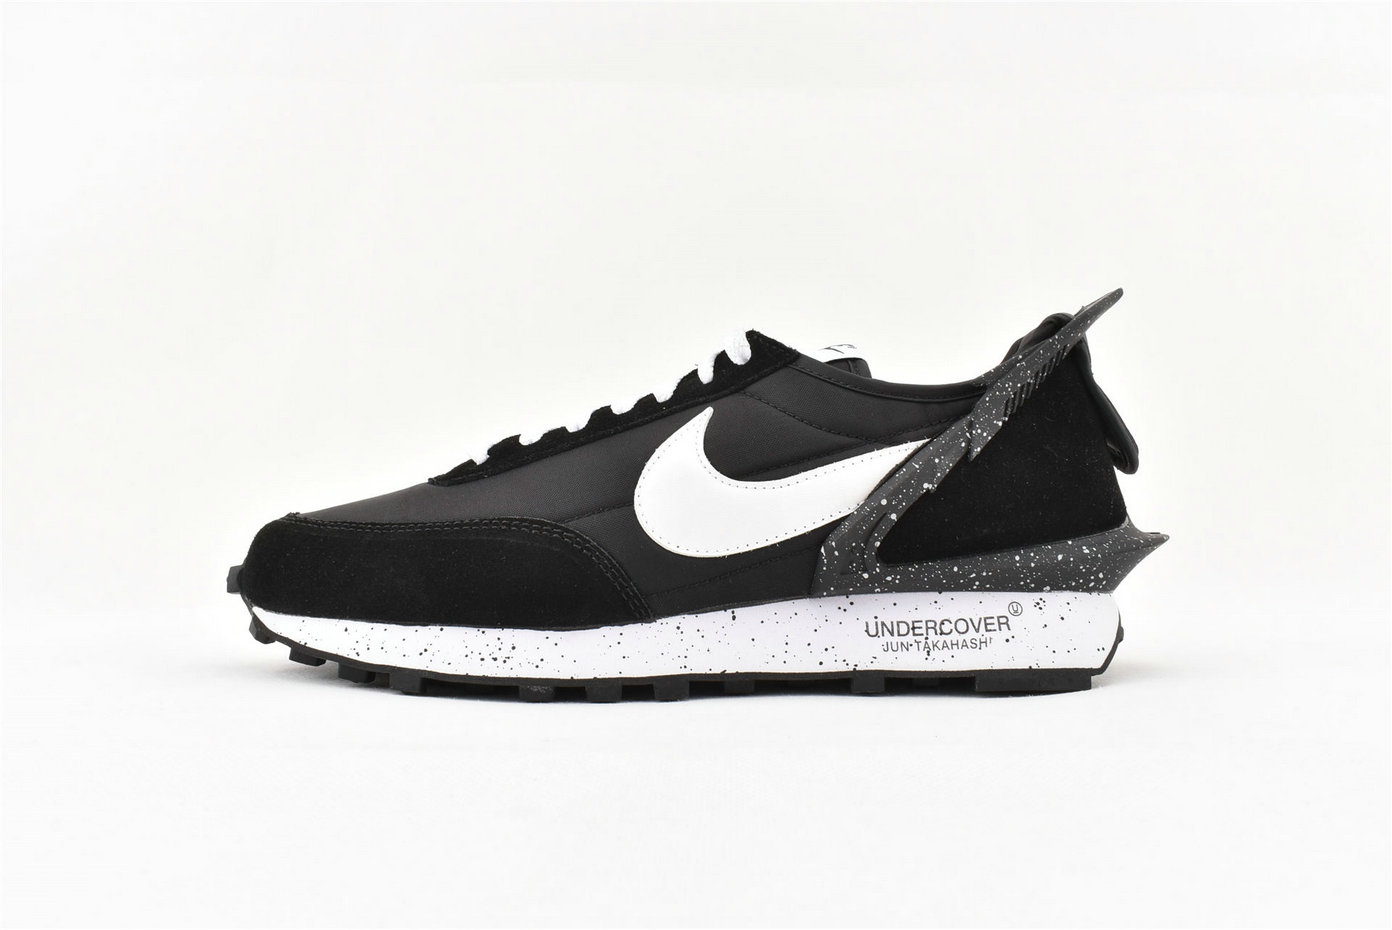 2019 Cheap Sacai x Nike Waffle Racer Special Shaped Black White Splash Ink AA6853 001 On VaporMaxRunning